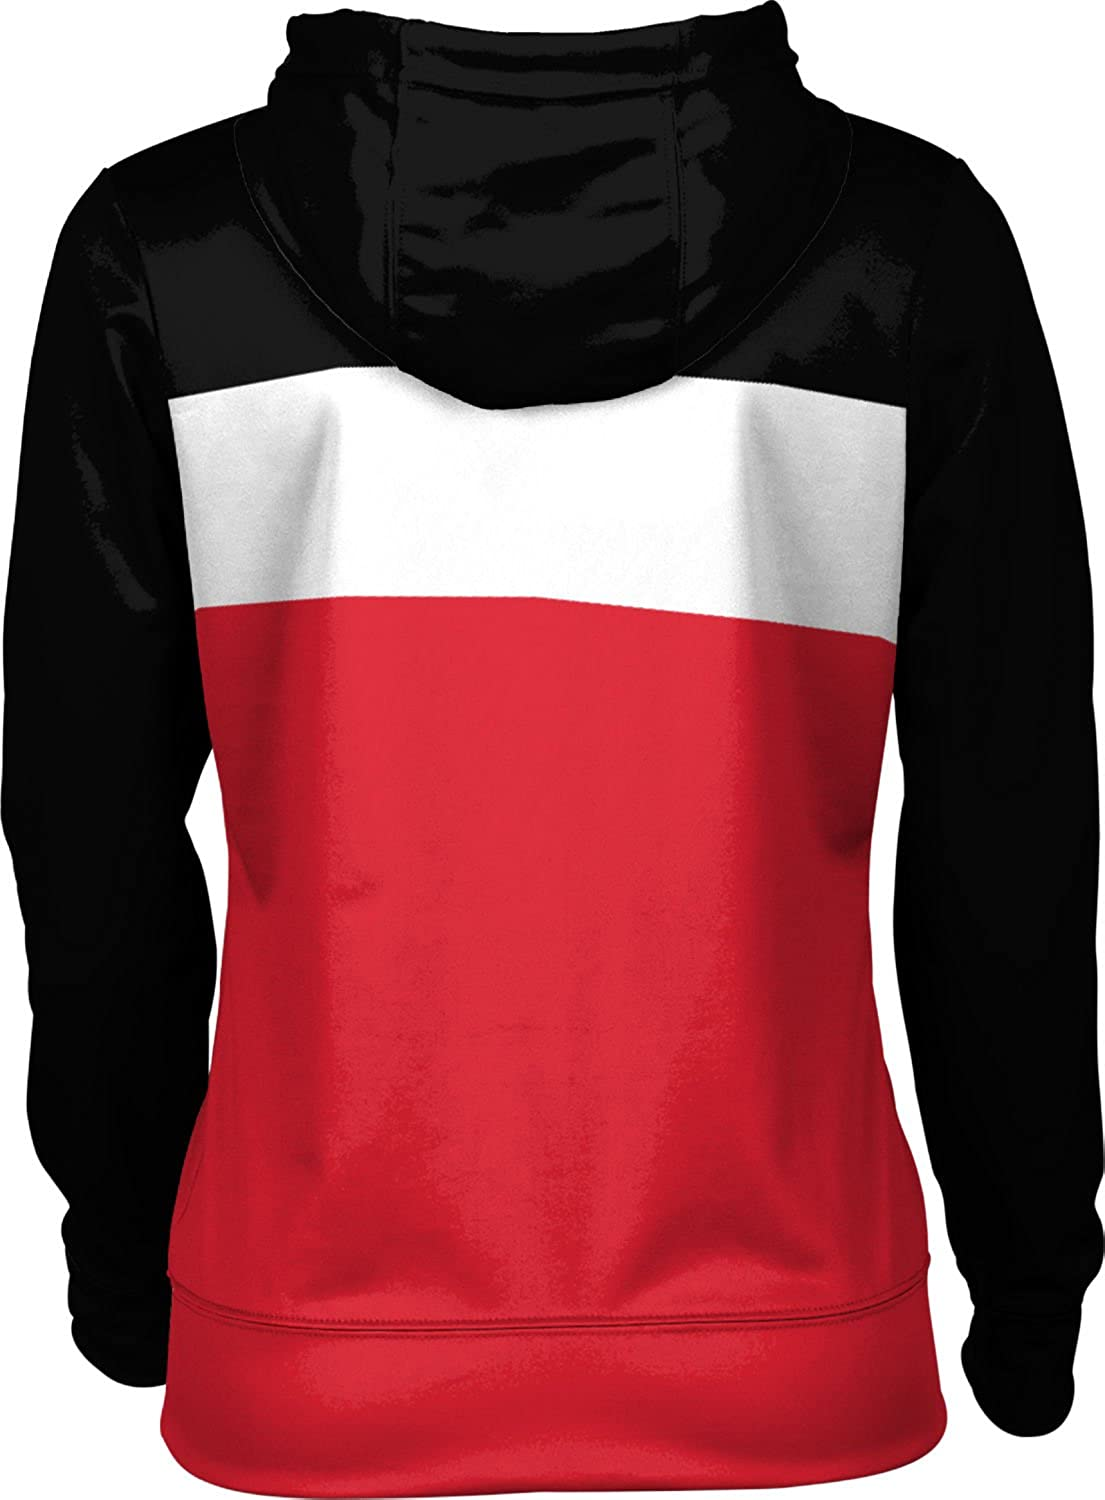 Prime School Spirit Sweatshirt University of The Incarnate Word Girls Pullover Hoodie